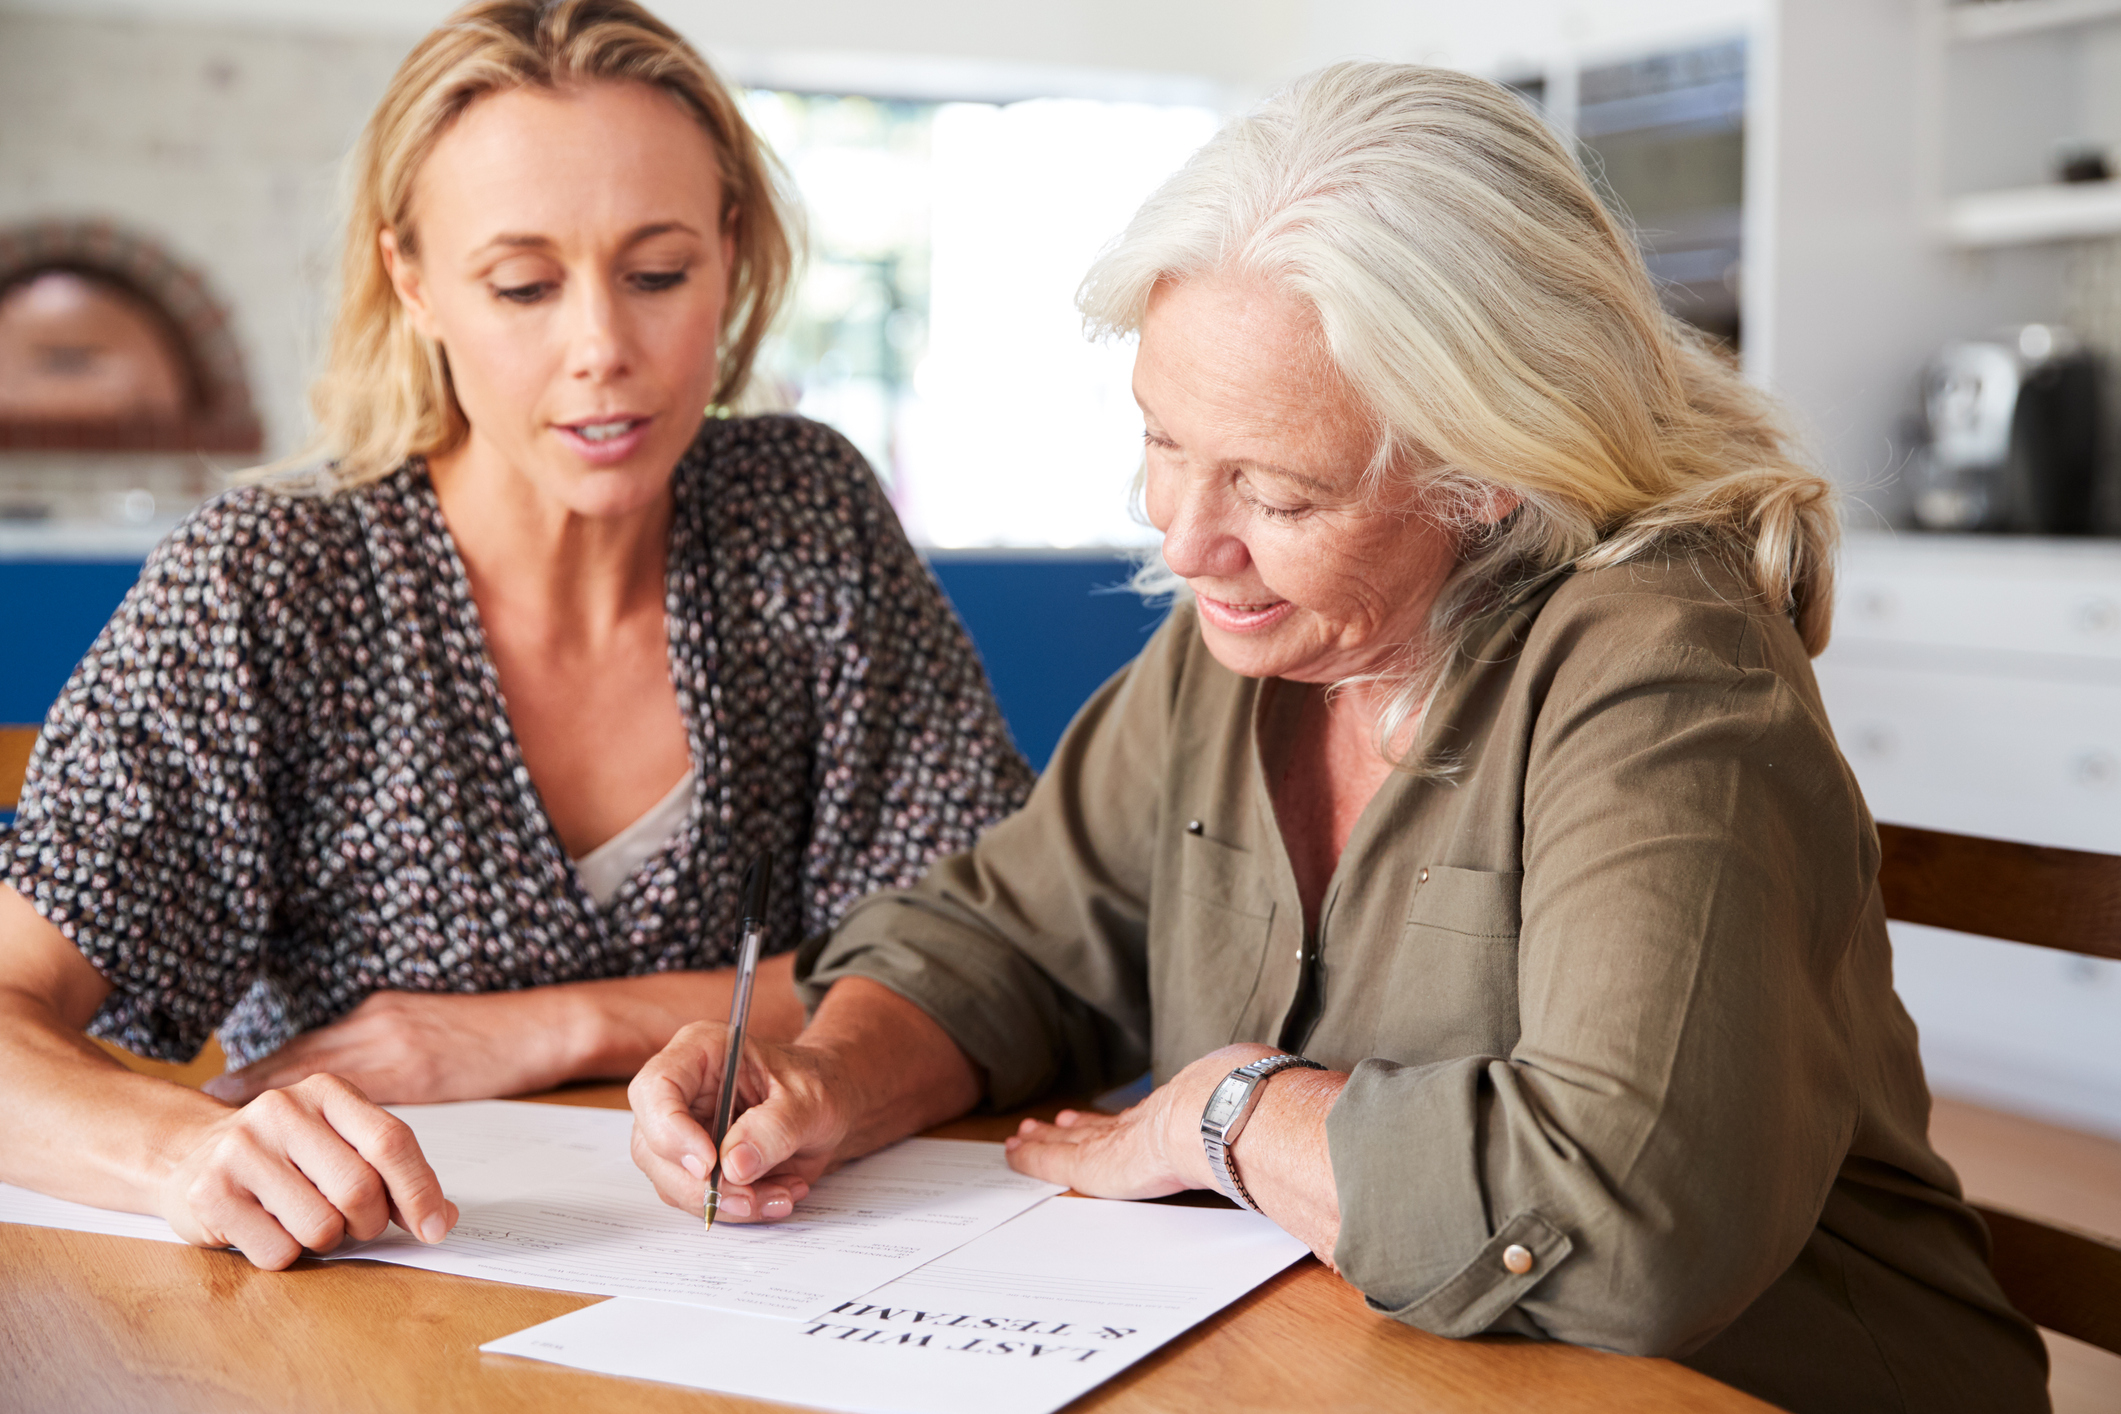 Younger Woman helping Older Woman fill out Last Will